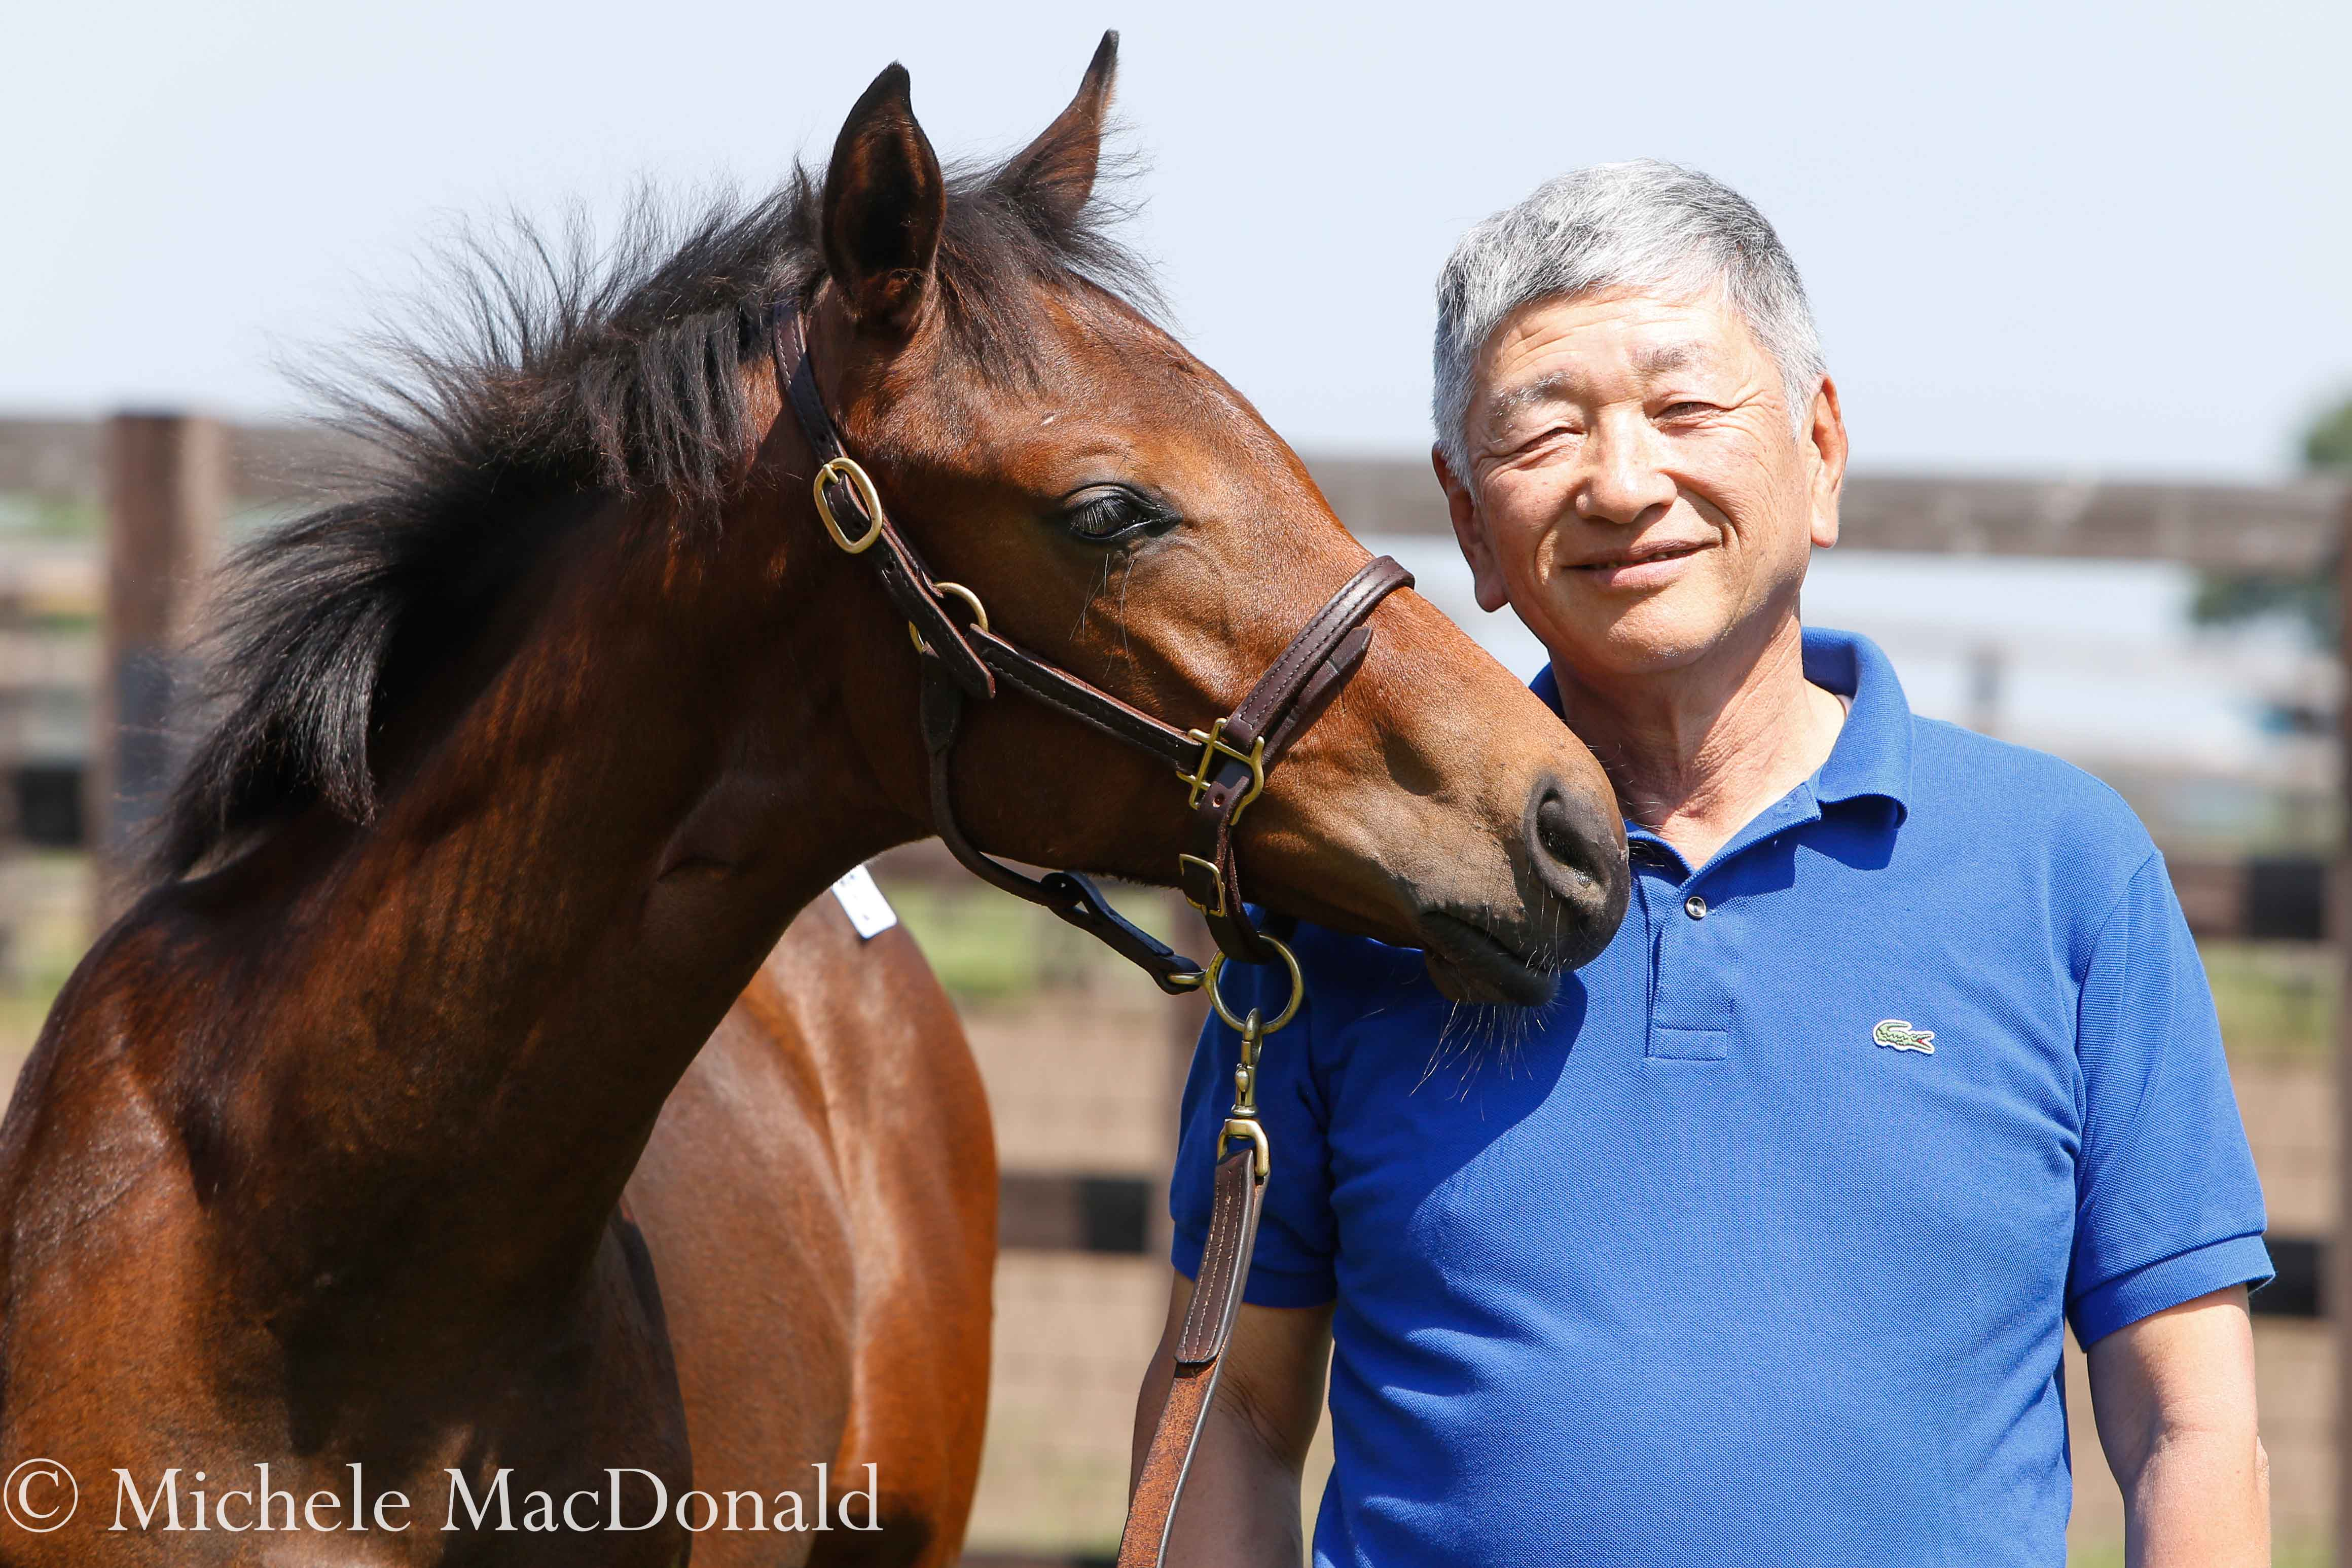 Proud consignor: Teruya Yoshida with a Kizuna colt out of Feodora consigned by his Shadai Farm. The foal went to Shinji Maeda for the equivalent of $789,000. Photo: Michele MacDonald